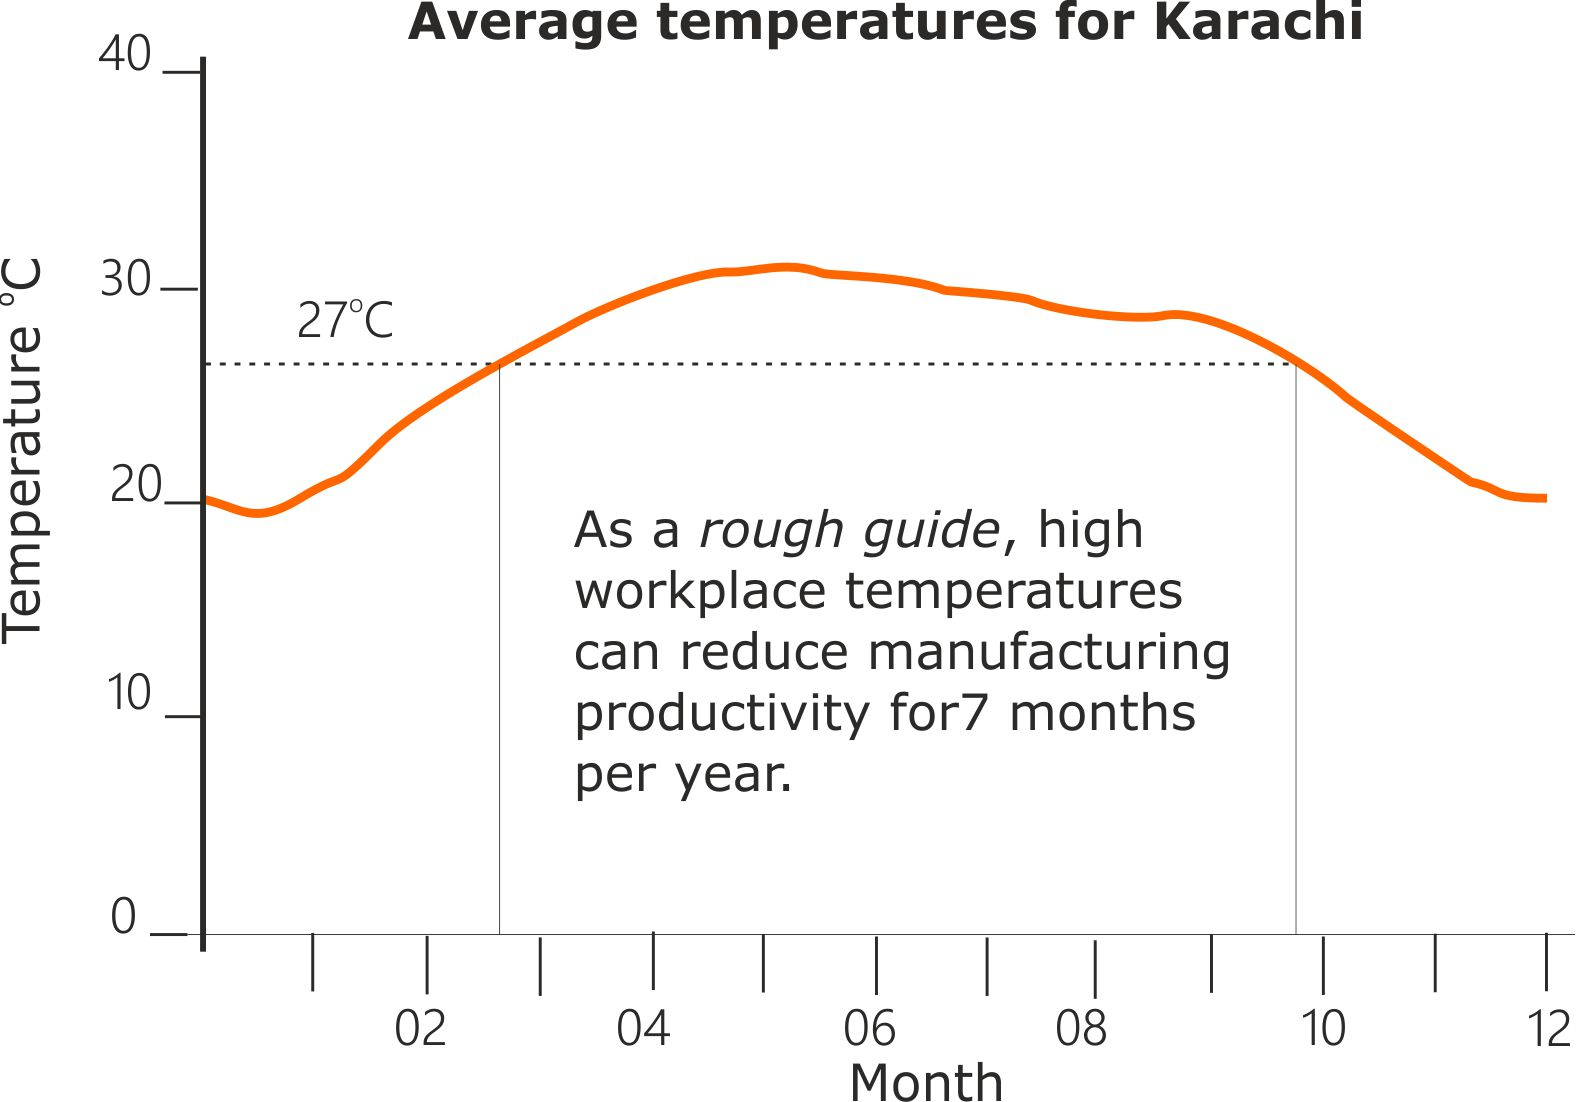 Karachi work efficiency falls